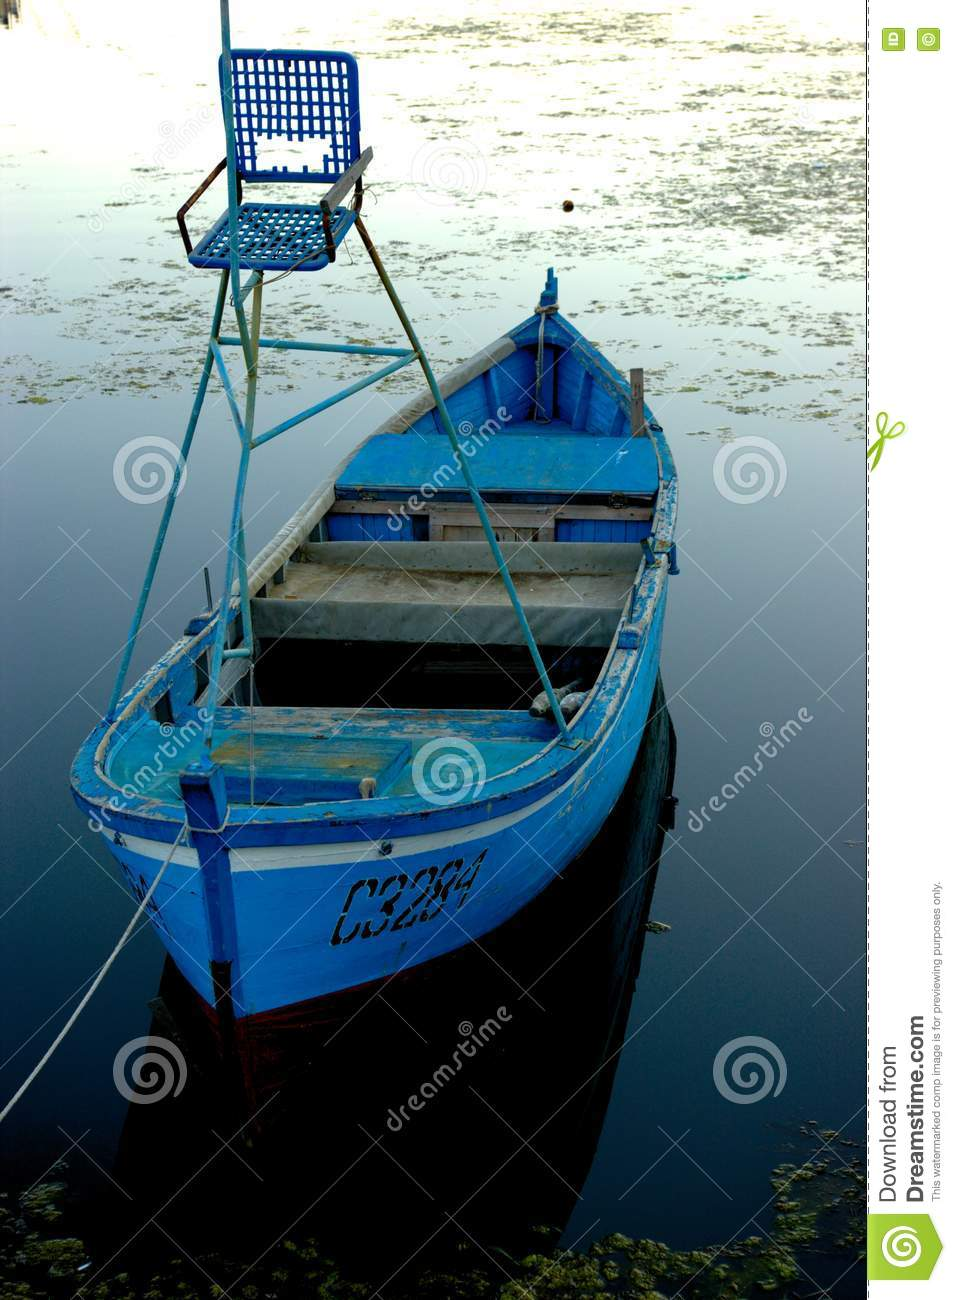 Deer-stand fishing boat